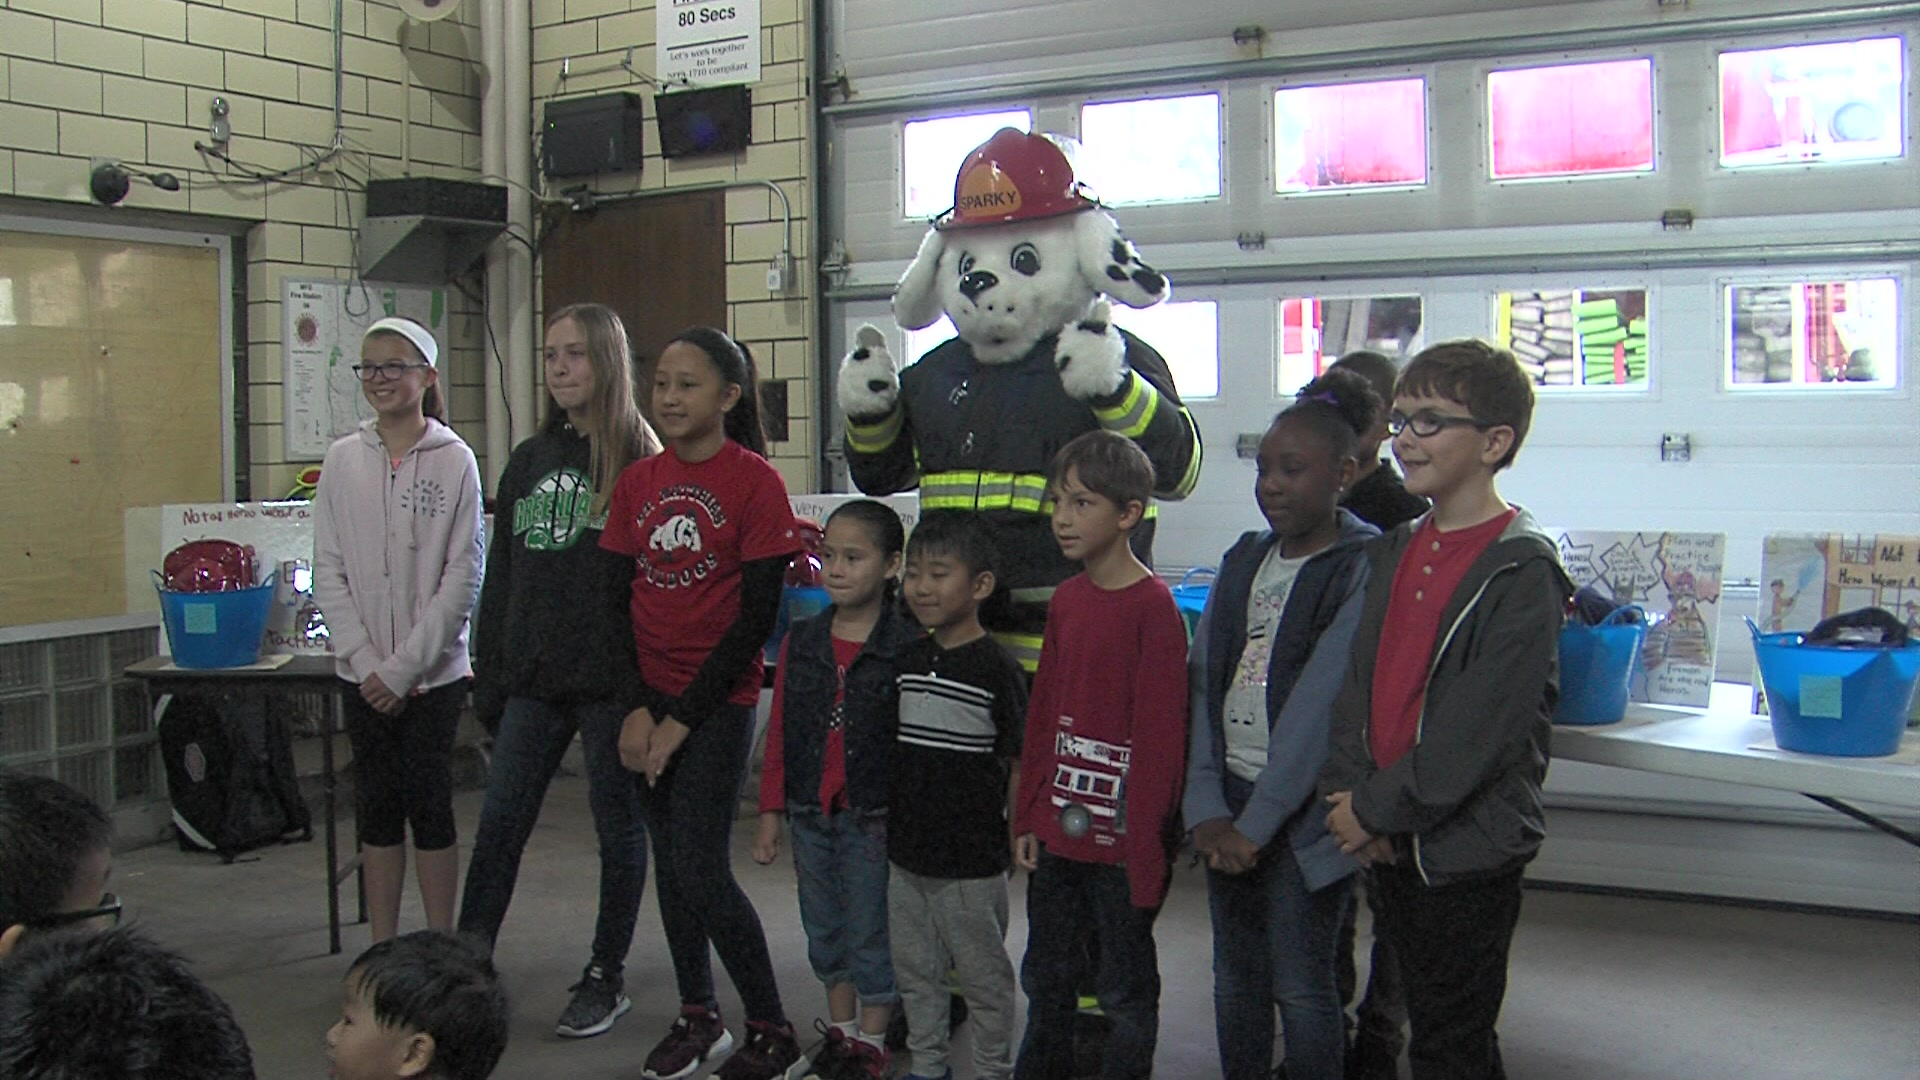 Student winners of MFD's 'Poster to Billboard' contest treated to pizza lunch at firehouse